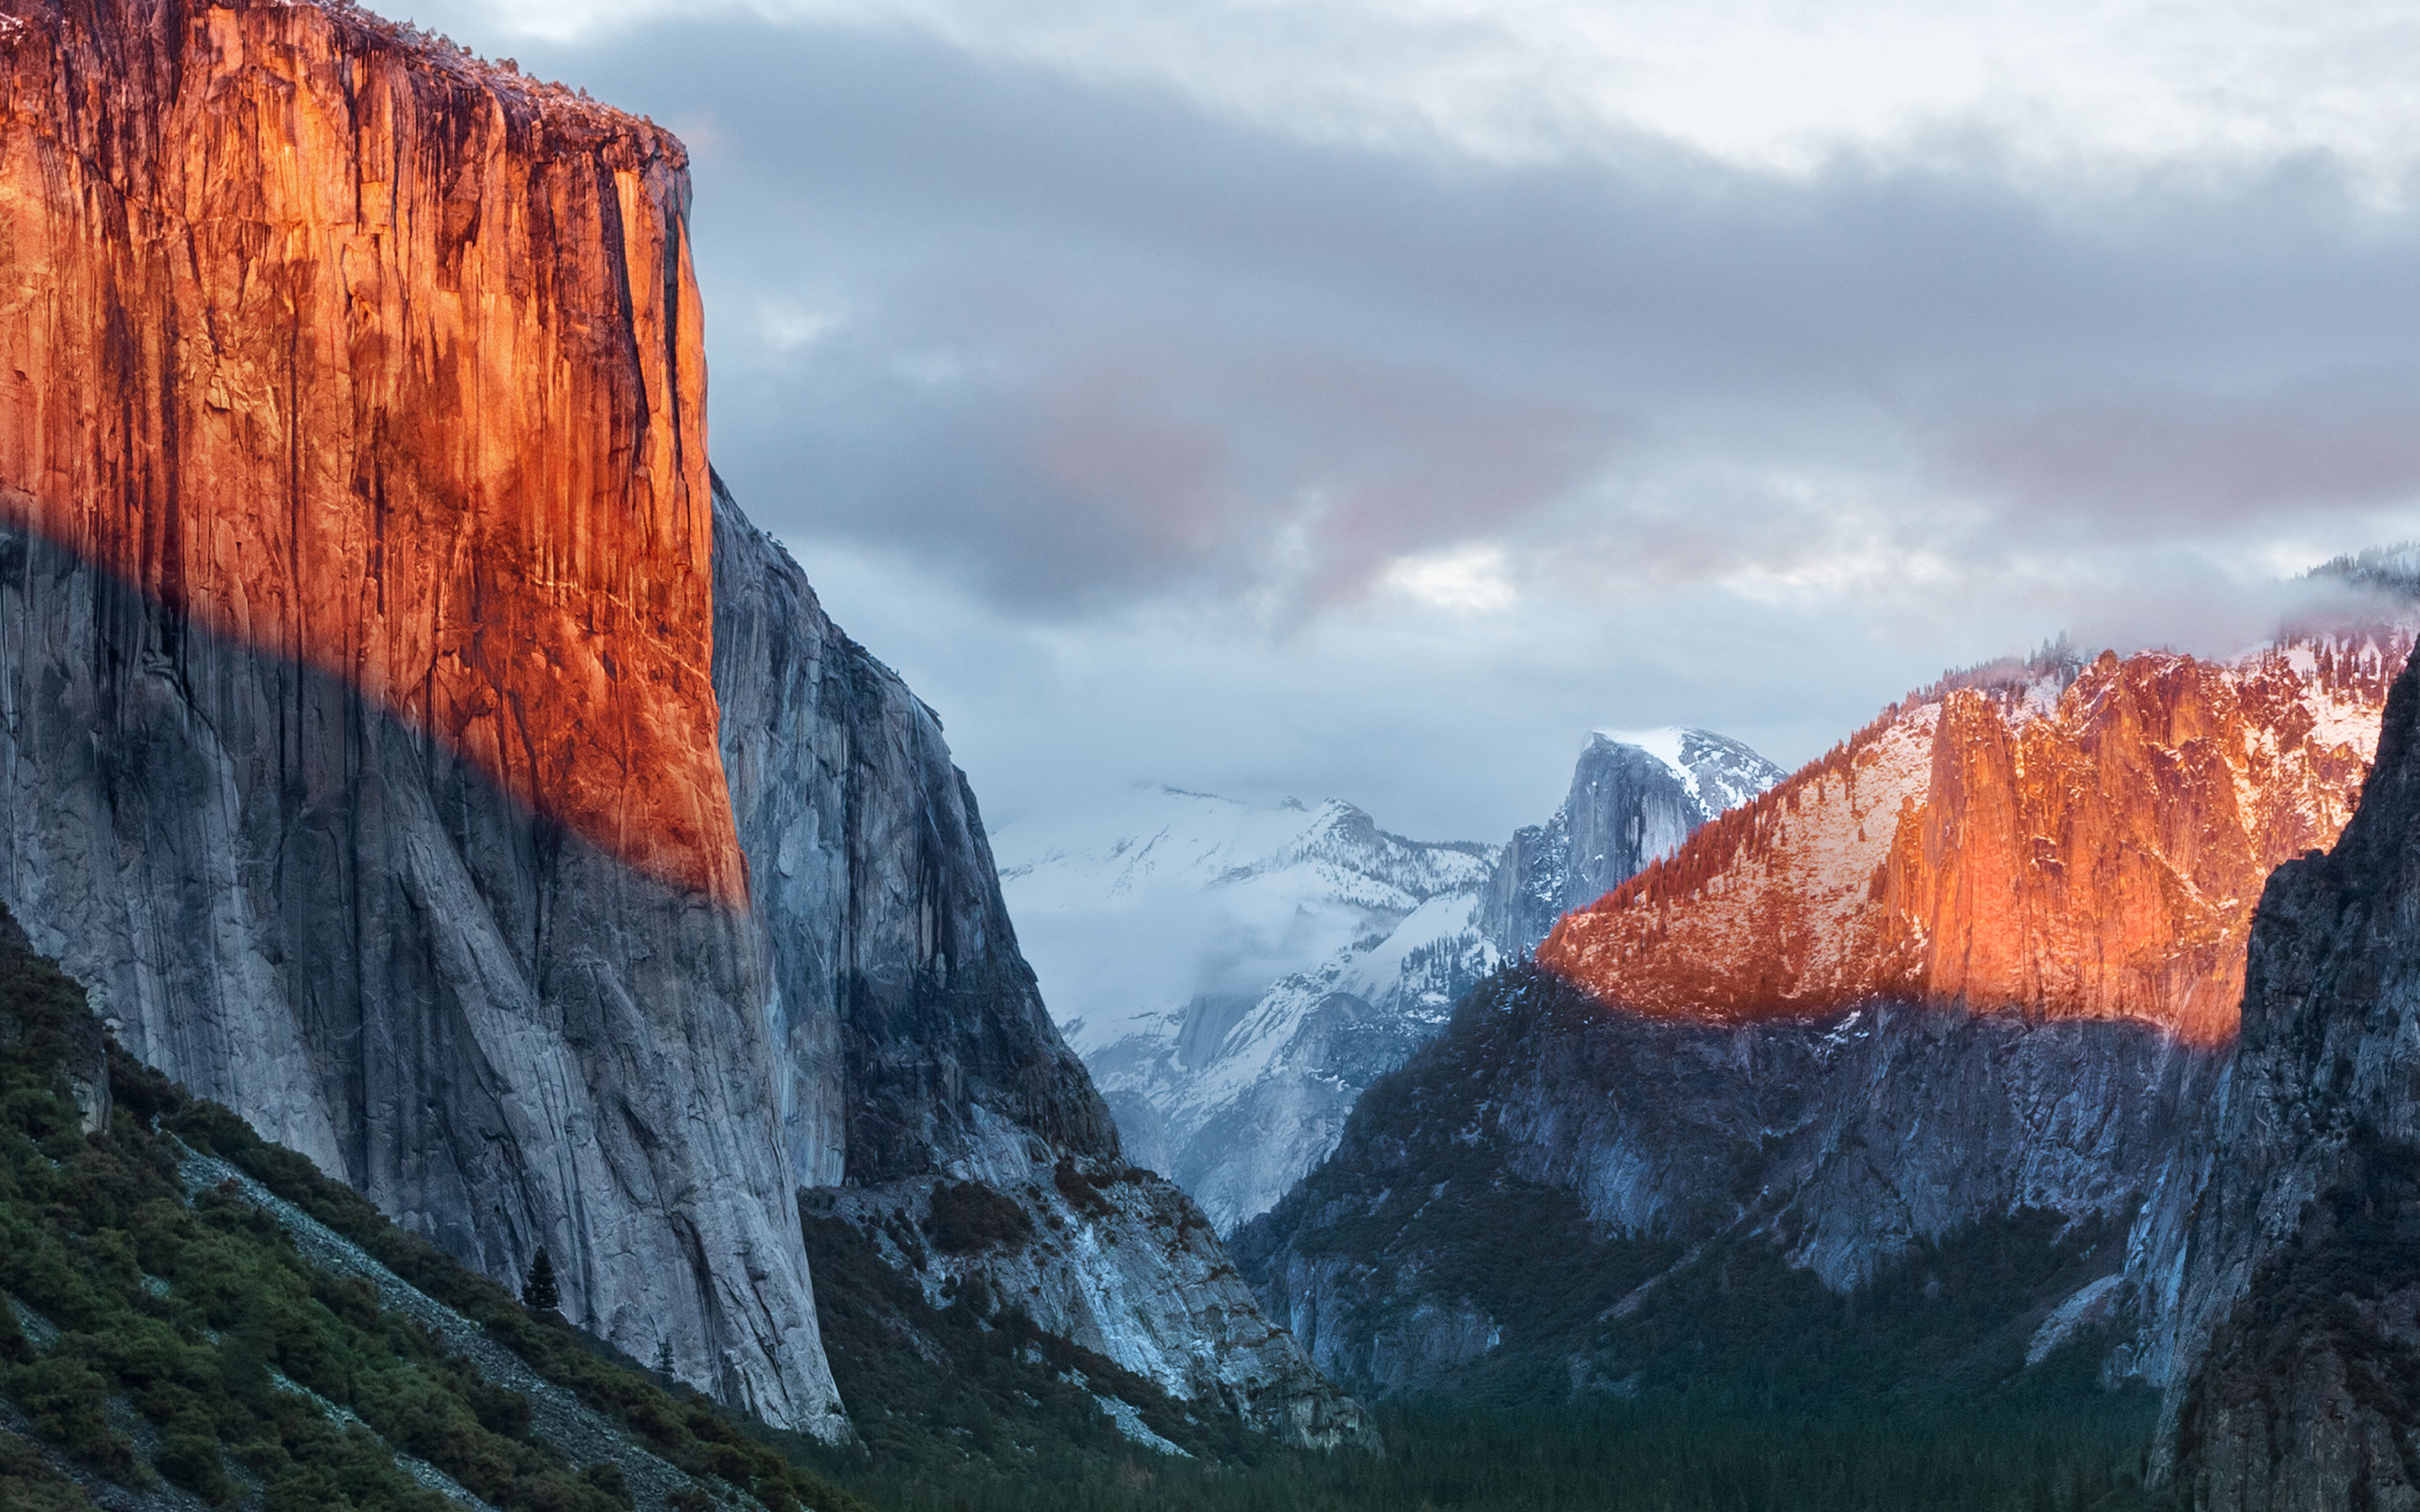 More Wallpaper For Iphone X Official Os X El Capitan Wallpaper For Iphone Ipad Desktop